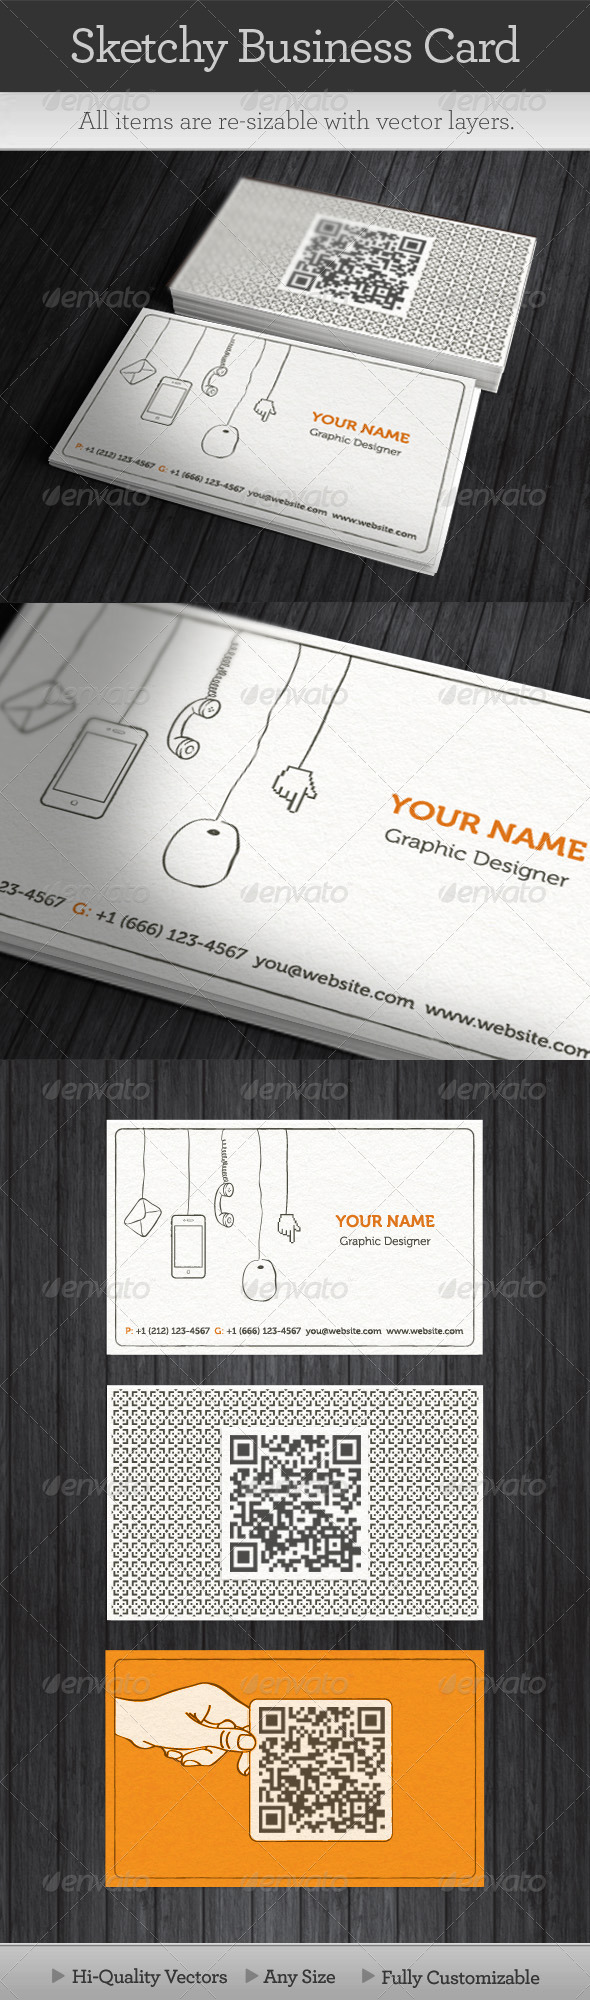 Sketchy Business Card - Creative Business Cards